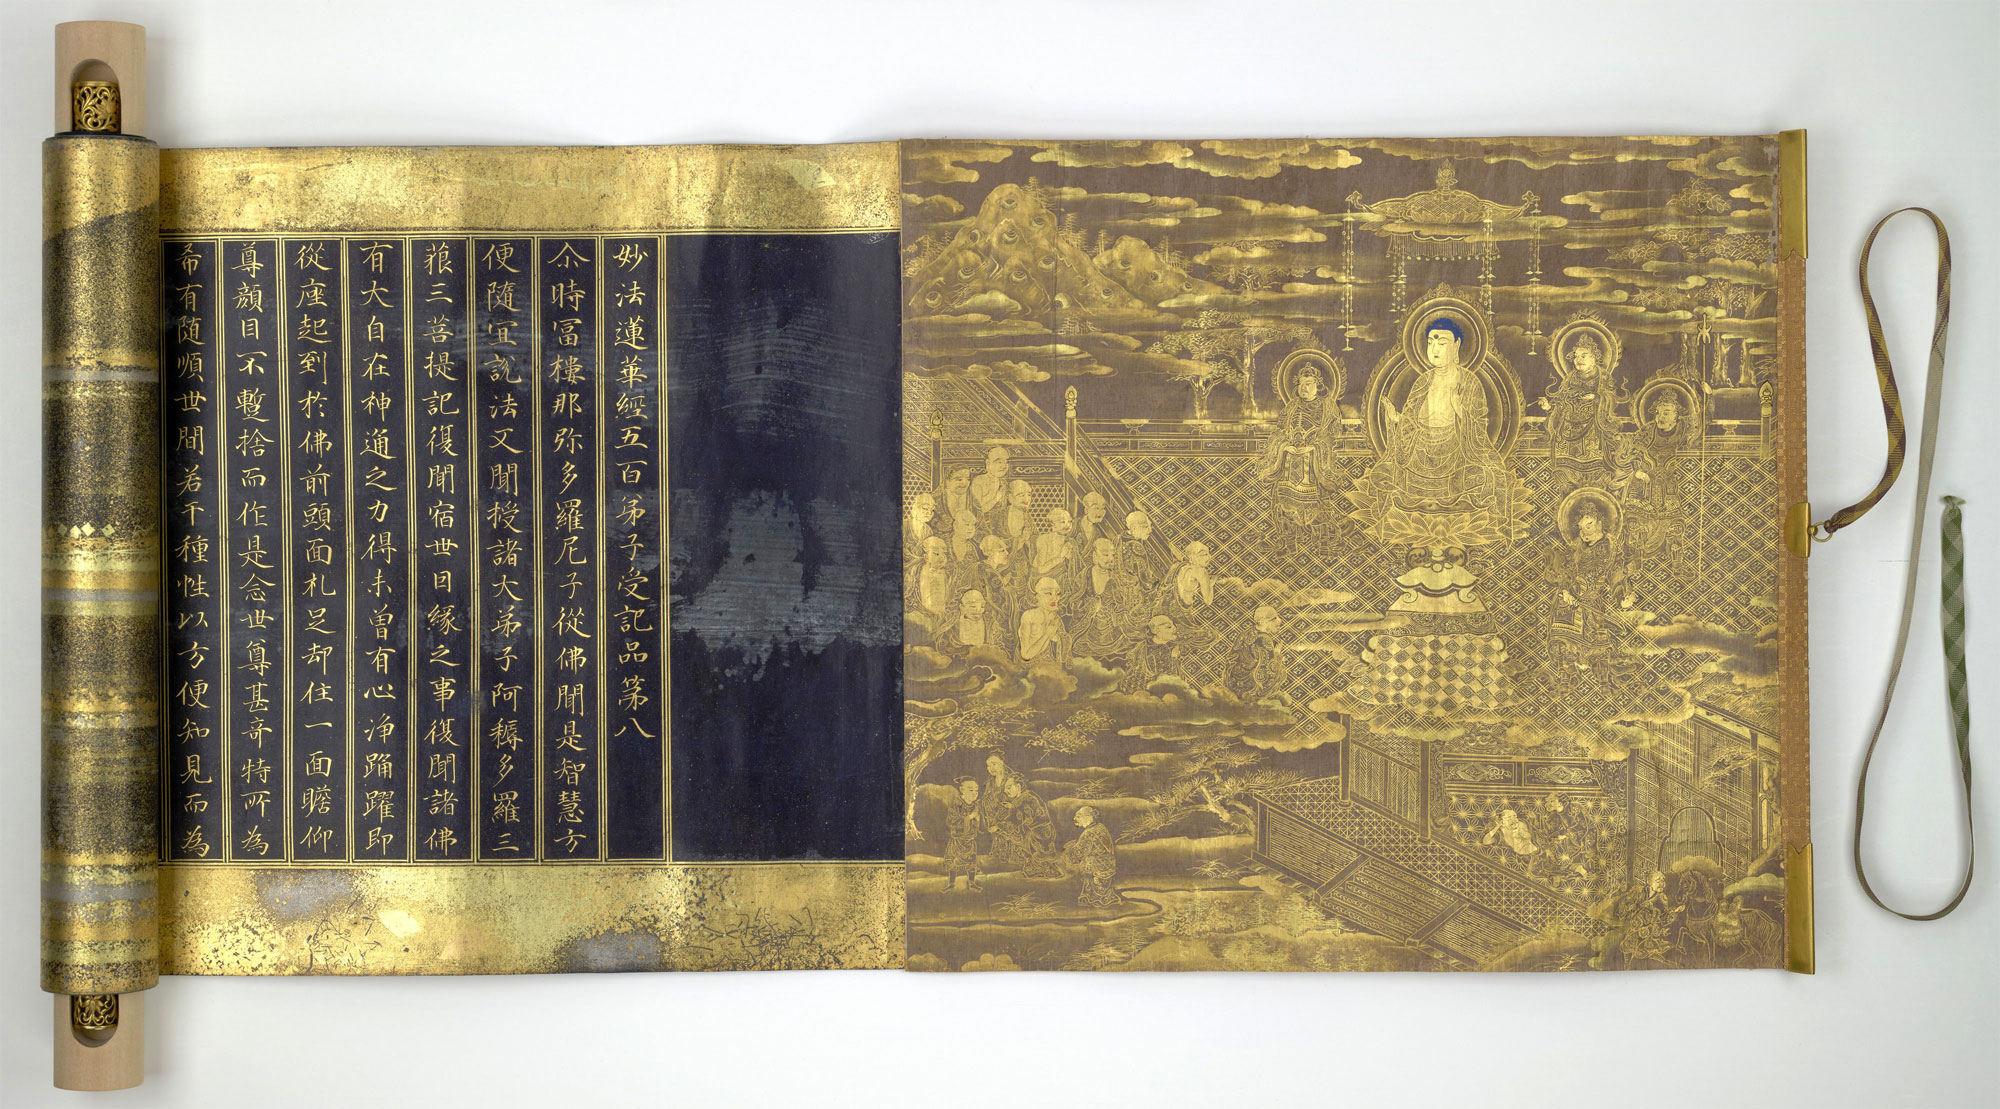 A copy of the Lotus Sūtra in a lavishly decorated scroll from Japan, dating from 1636. Gold gold and silver ink on indigo-dyed paper. Copyright: British Library Board